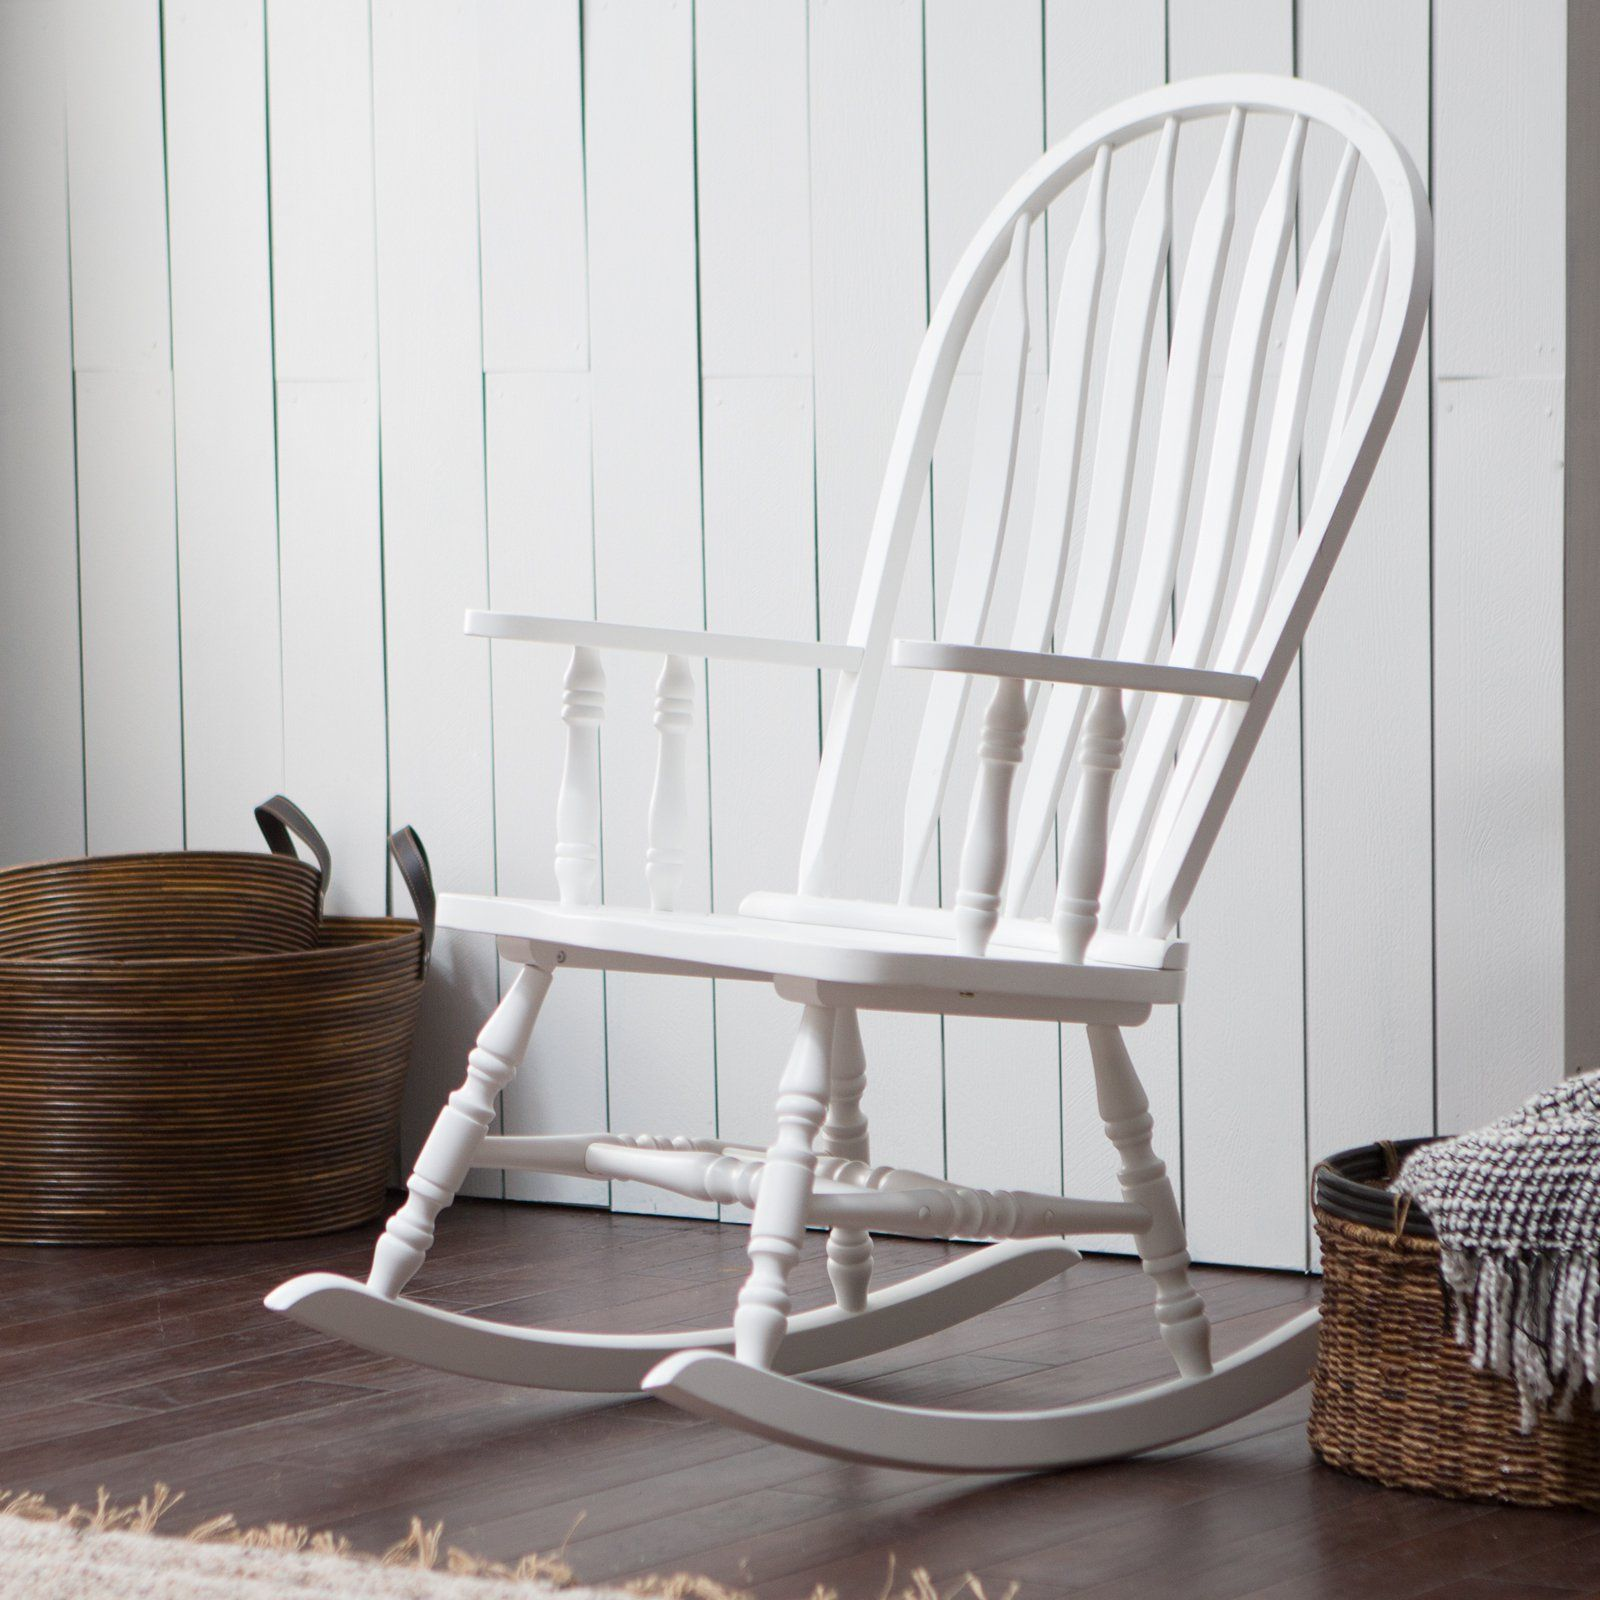 Wooden Rocking Chair For Nursery Belham Living Windsor Indoor Wood Rocking Chair â White